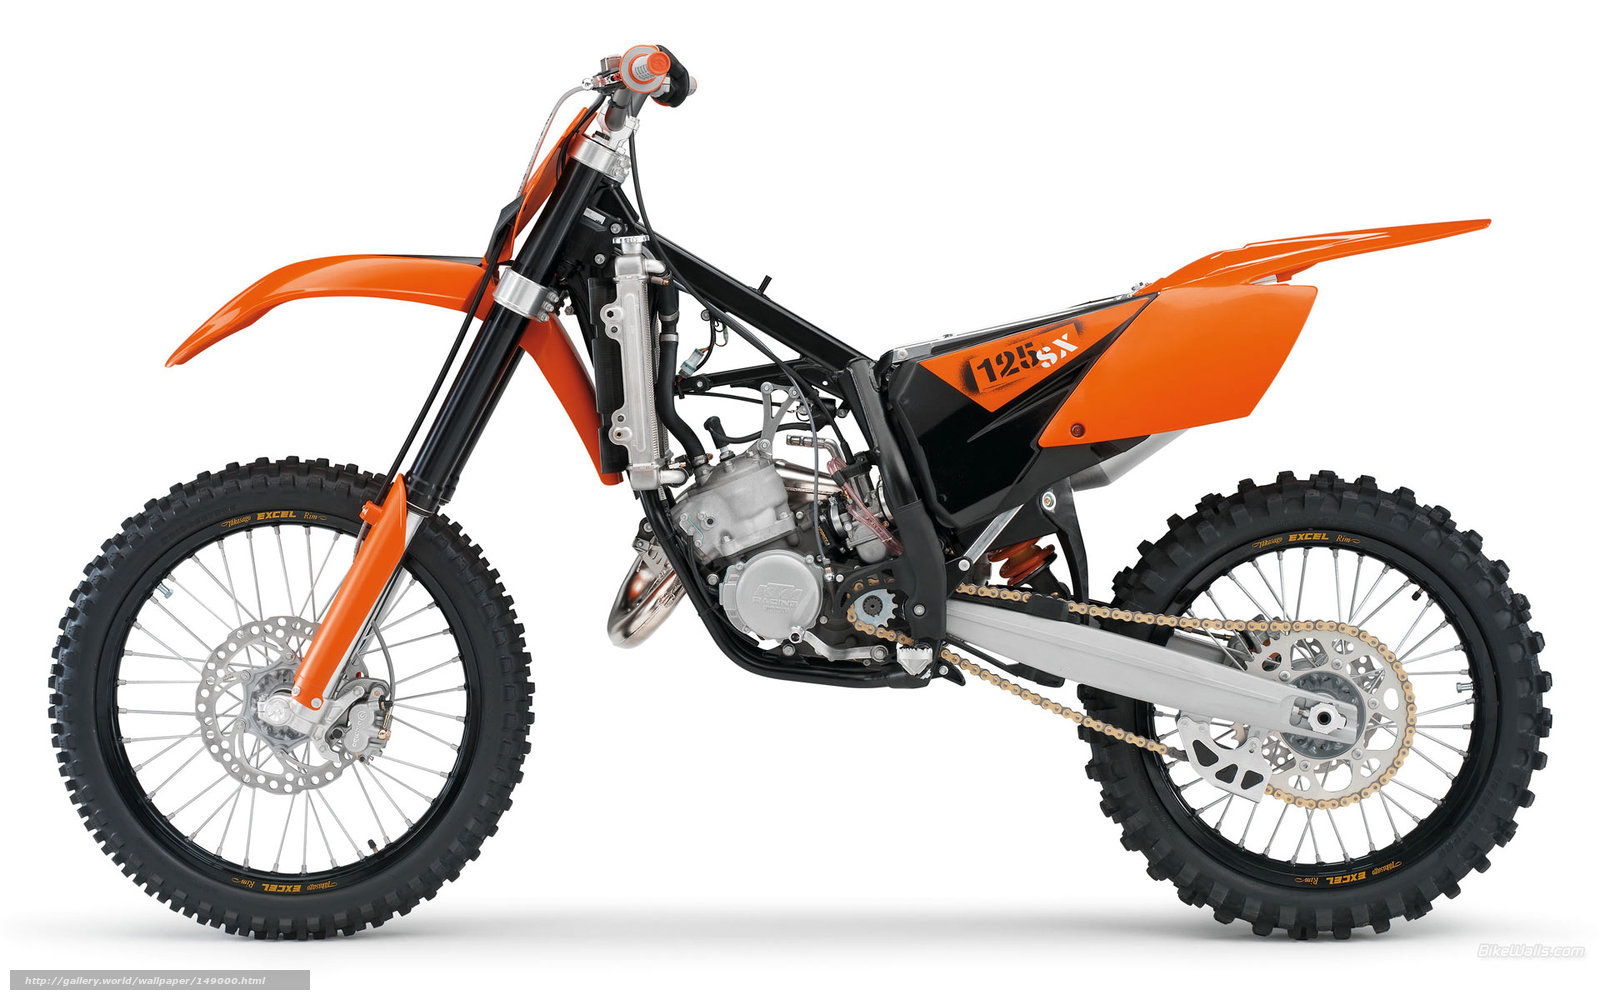 download wallpaper ktm motocross sx 125 sx 125 sx 2006 free desktop wallpaper in the. Black Bedroom Furniture Sets. Home Design Ideas